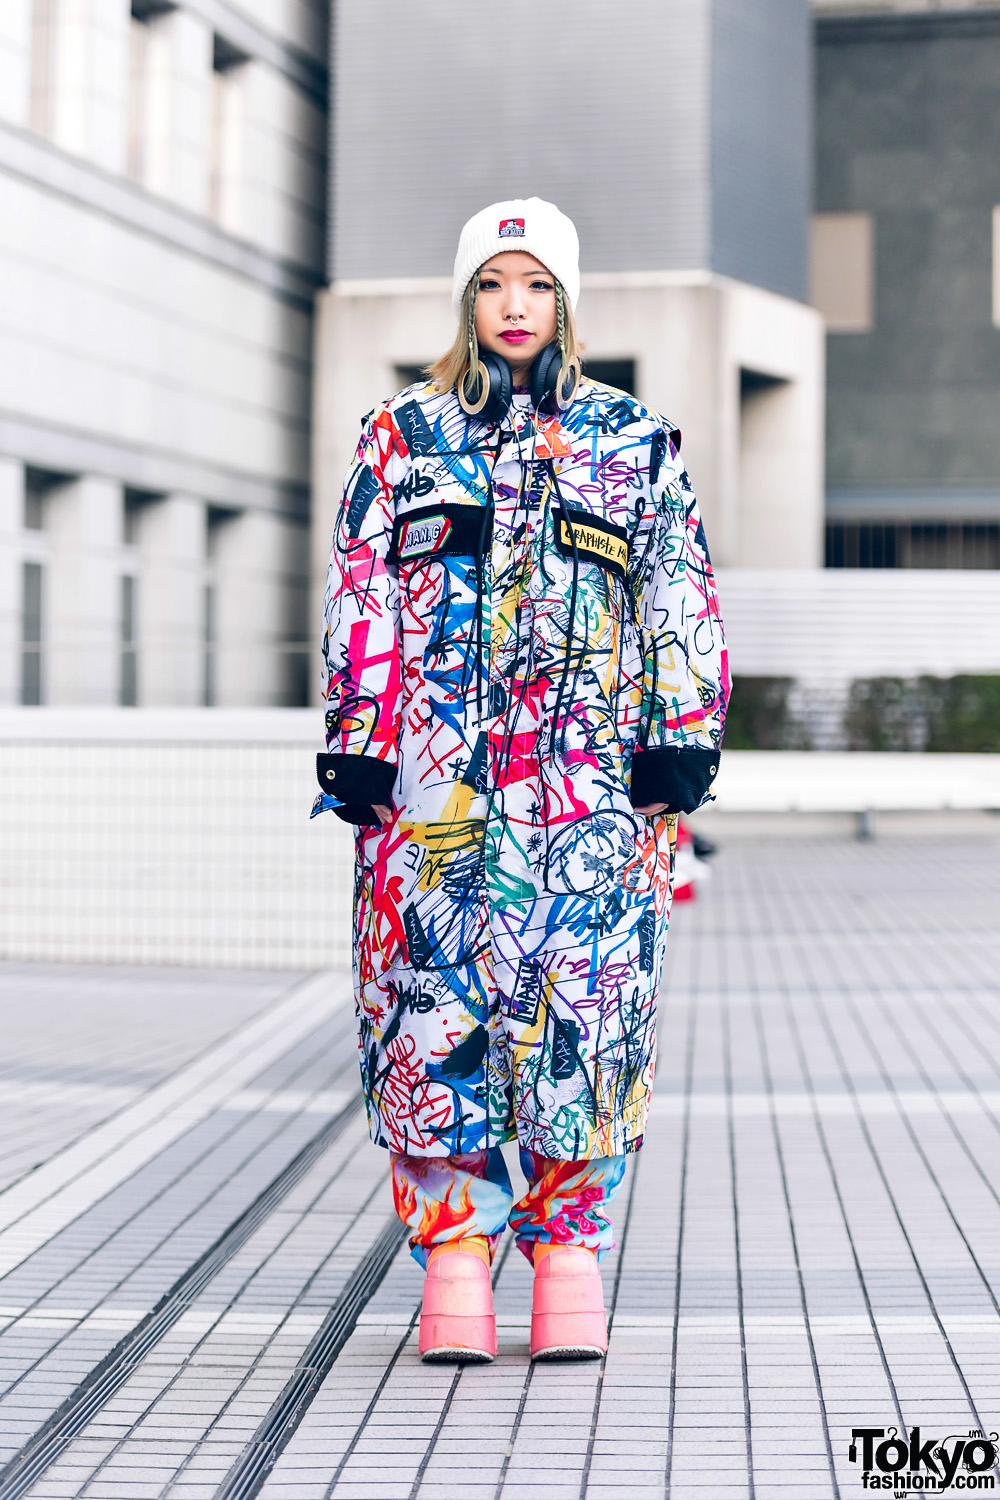 Tokyo Street Style w/ Graffiti Coat, Colorful Platform Shoes, Beret, Man G, Demonia & Kobinai